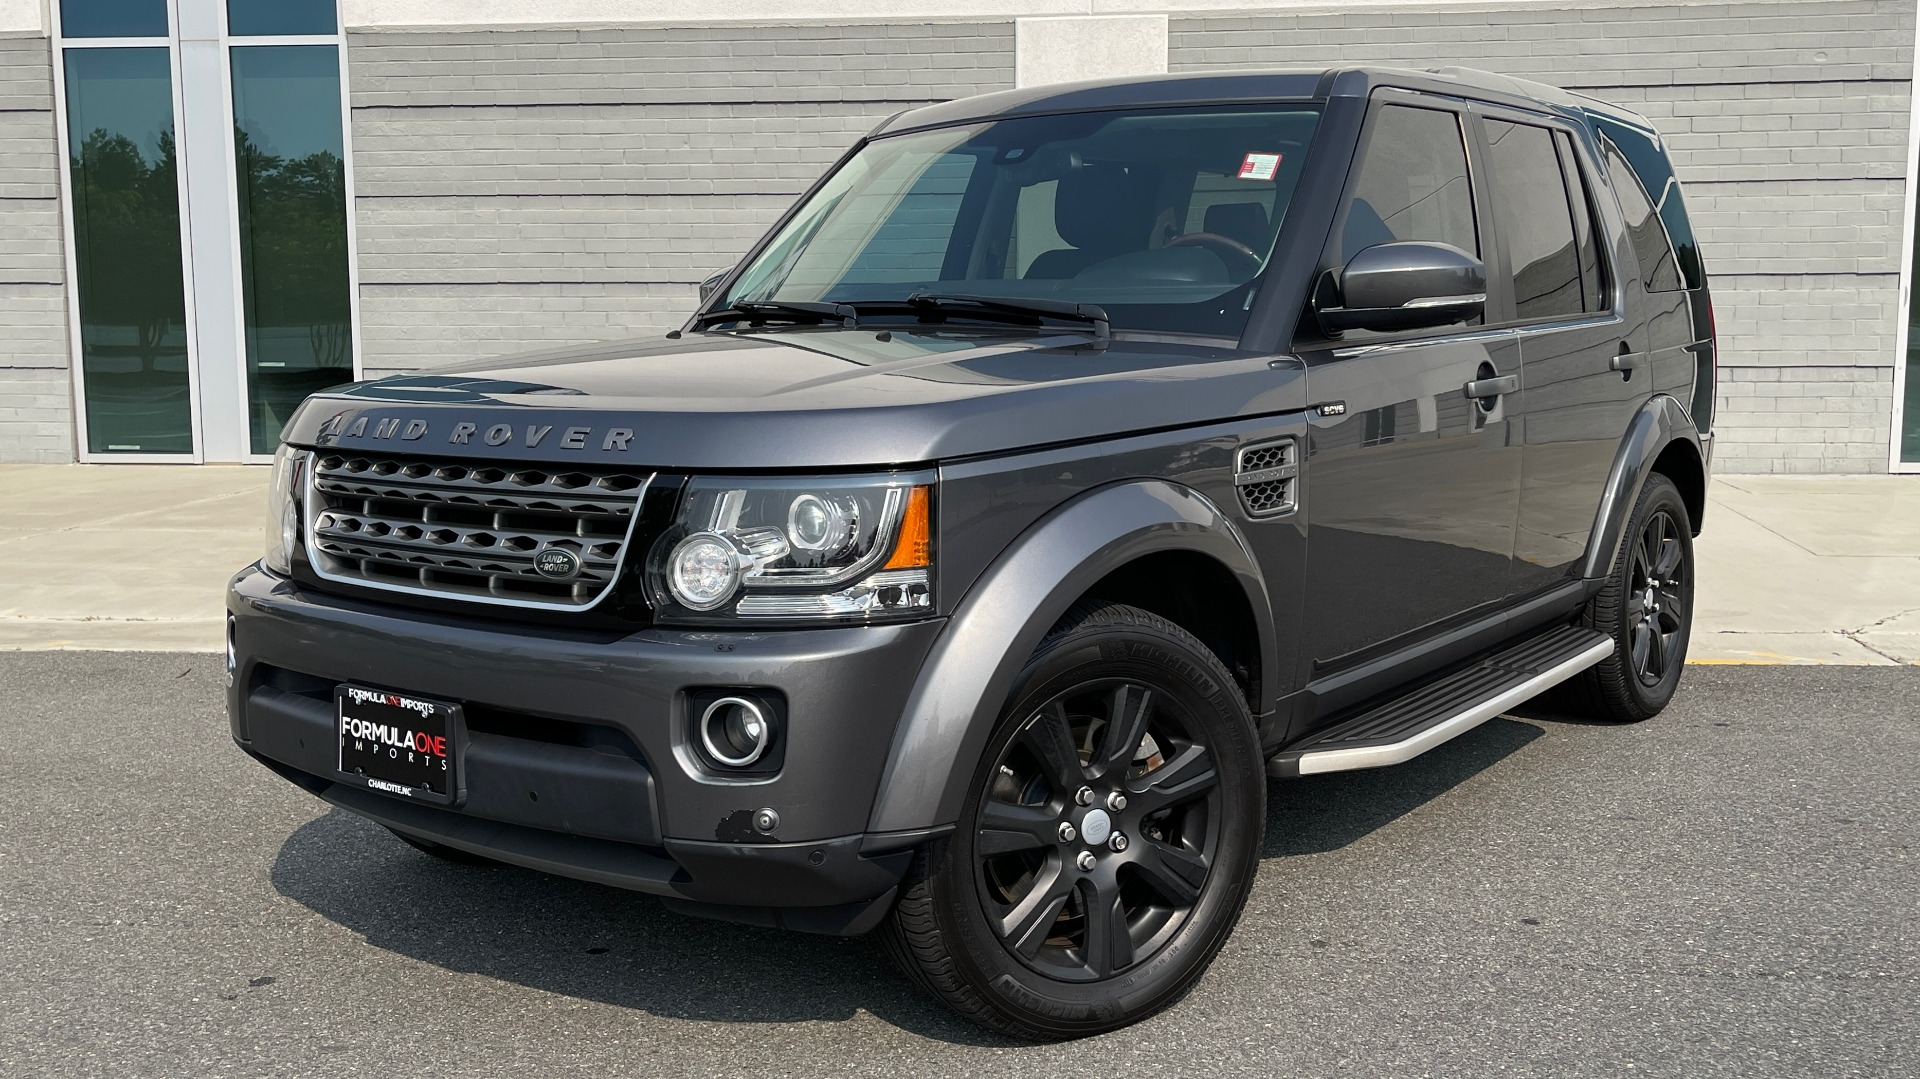 Used 2016 Land Rover LR4 HSE / NAV / SUNROOF / 3-ROW / MERIDIAN SOUND SYS / REARVIEW for sale $30,995 at Formula Imports in Charlotte NC 28227 1